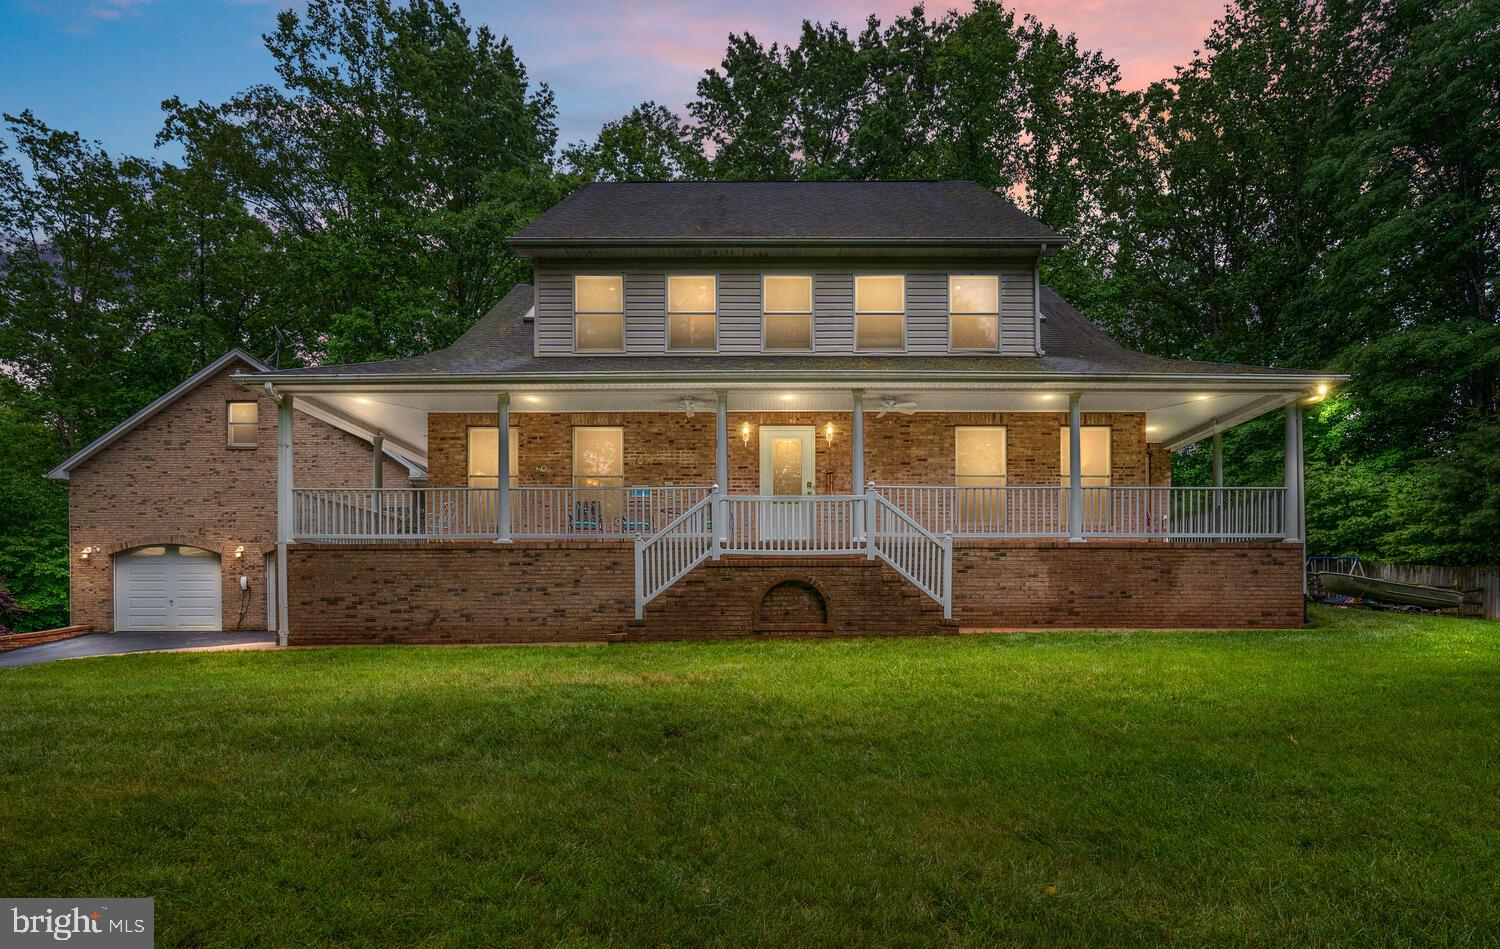 You don't want to miss out on this one of a kind listing! Come check out this custom brick colonial